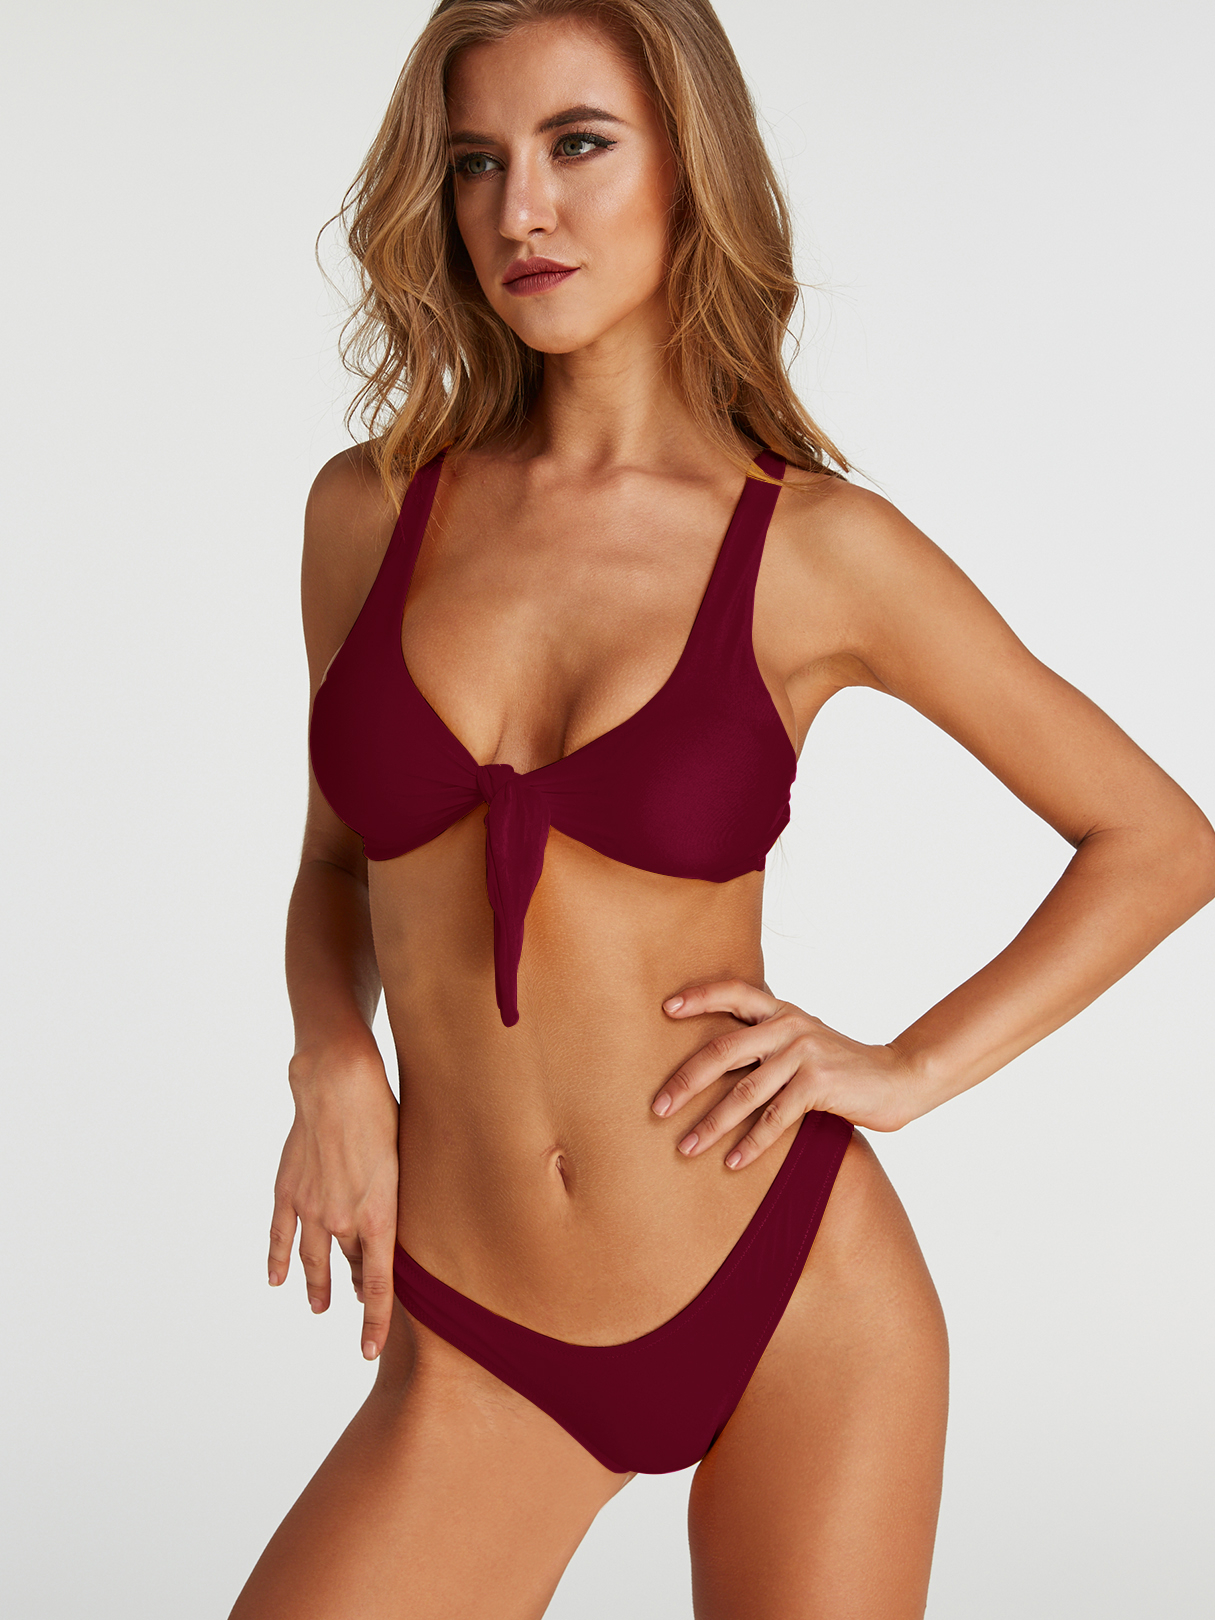 Tie-up Front Two-piece Bikinis Set in Burgundy south shore 3 piece bookcase set in pure white